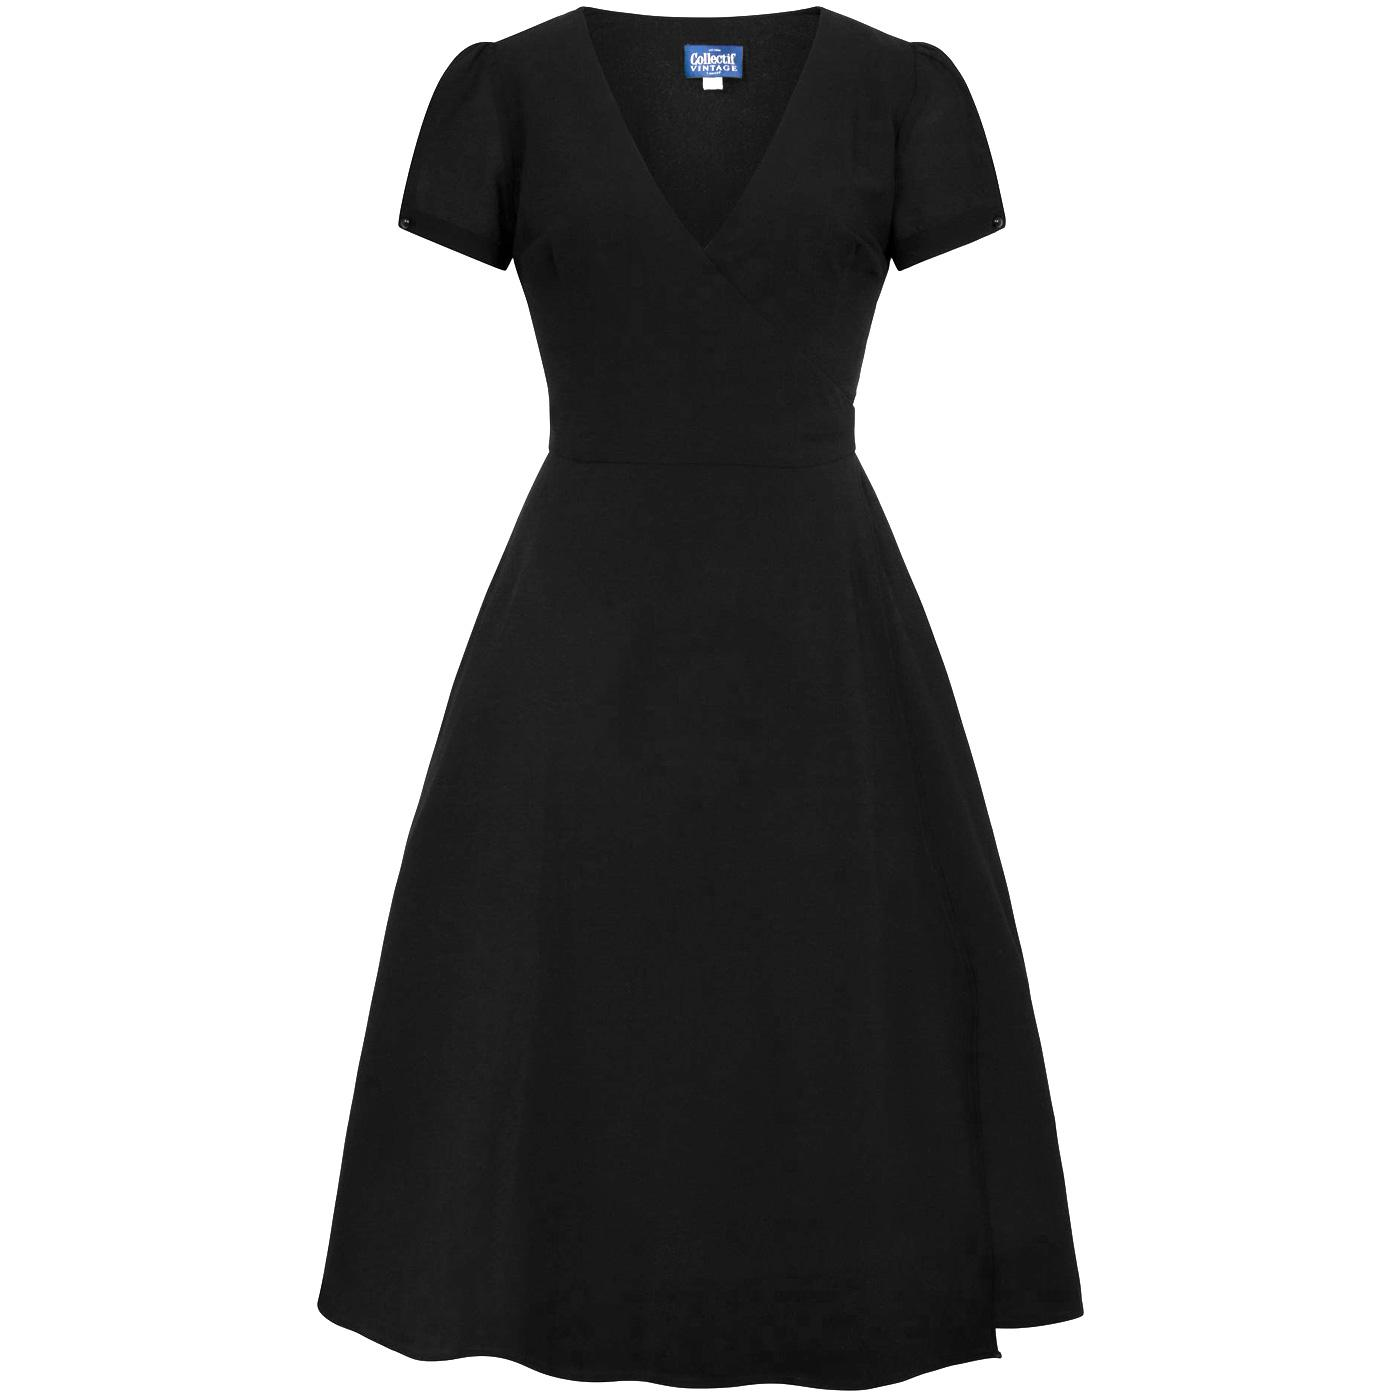 Wilhelmina COLLECTIF Retro 50s Plain Wrap Dress